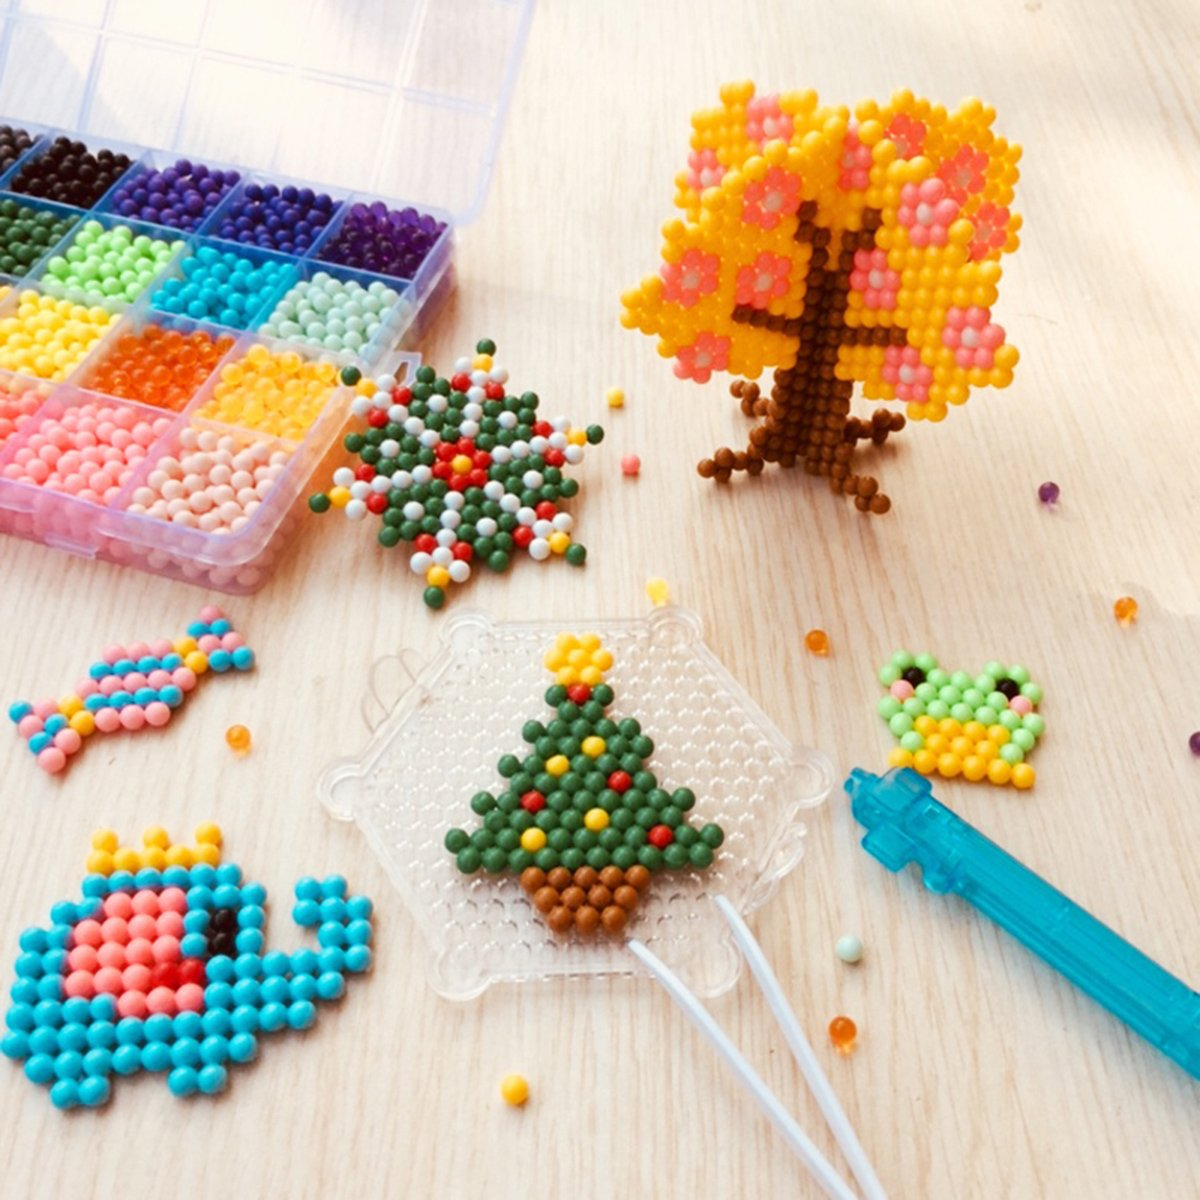 Aqua water beads Beginners Studio perler fusion Craft beads Art Crafts toys for kids non toxic with bead palette, layout table, bead pen, bead peeler, sprayer, template sheets -15 colors(2400pcs) by QIAONIUNIU (Image #9)